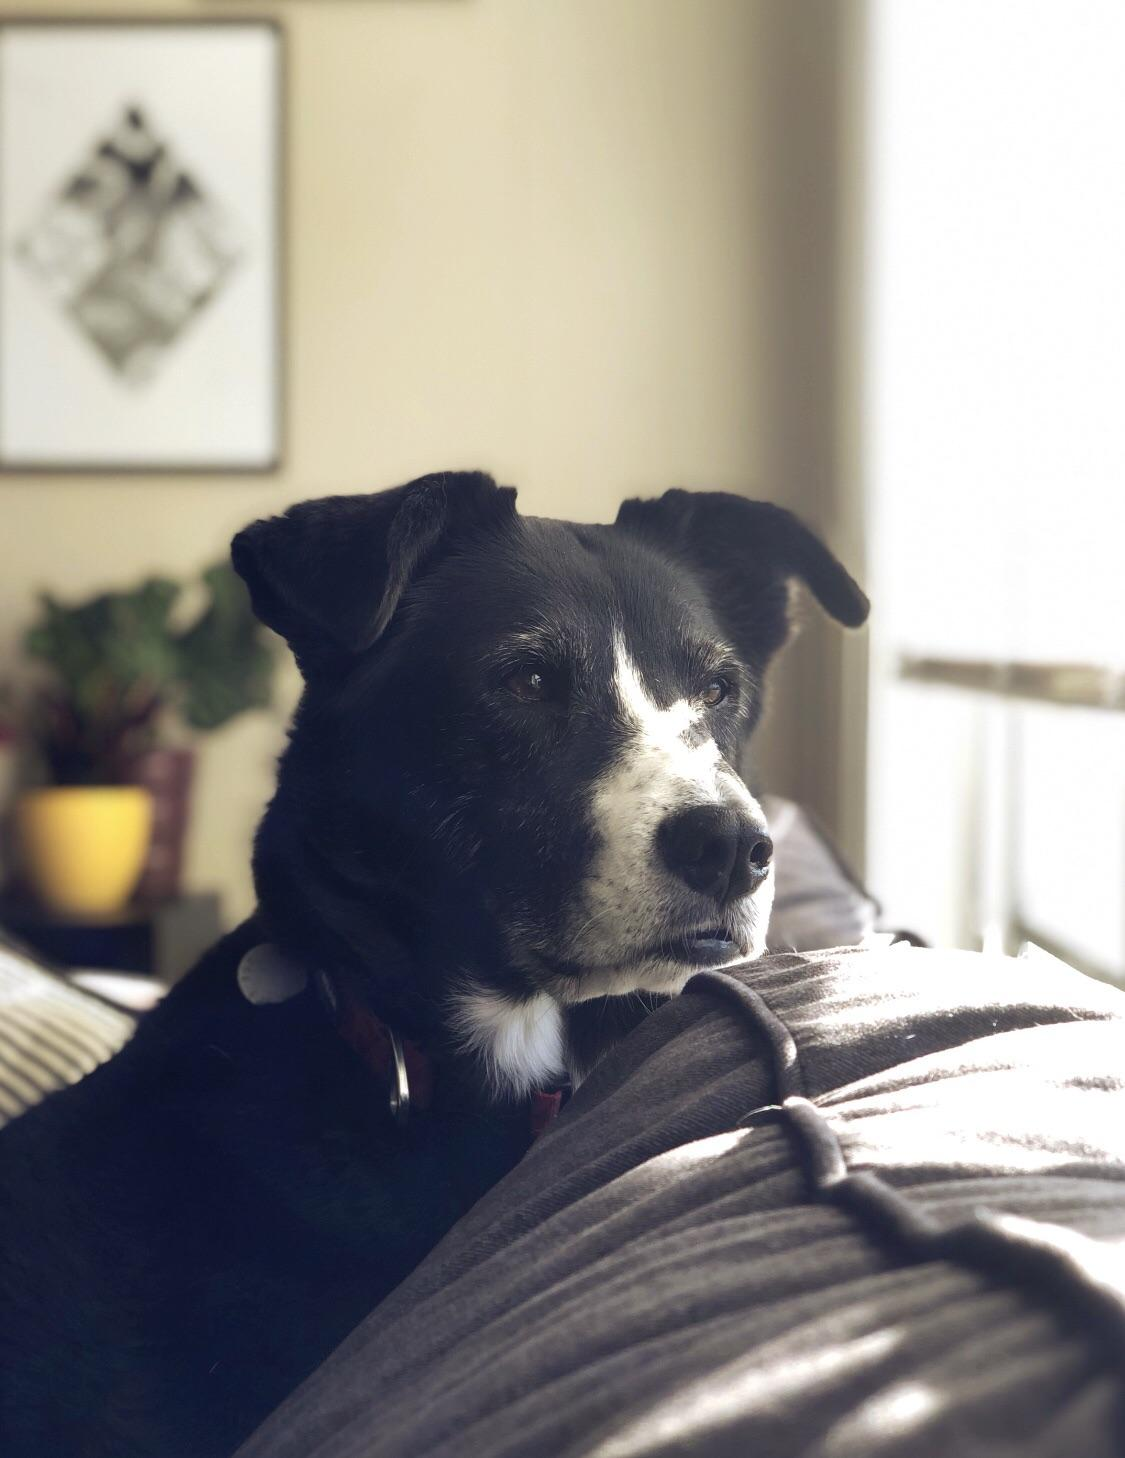 Advice about senior dog with anxiety -- experiences with fluoxetine?-6xi8oqvpt0j21.jpg